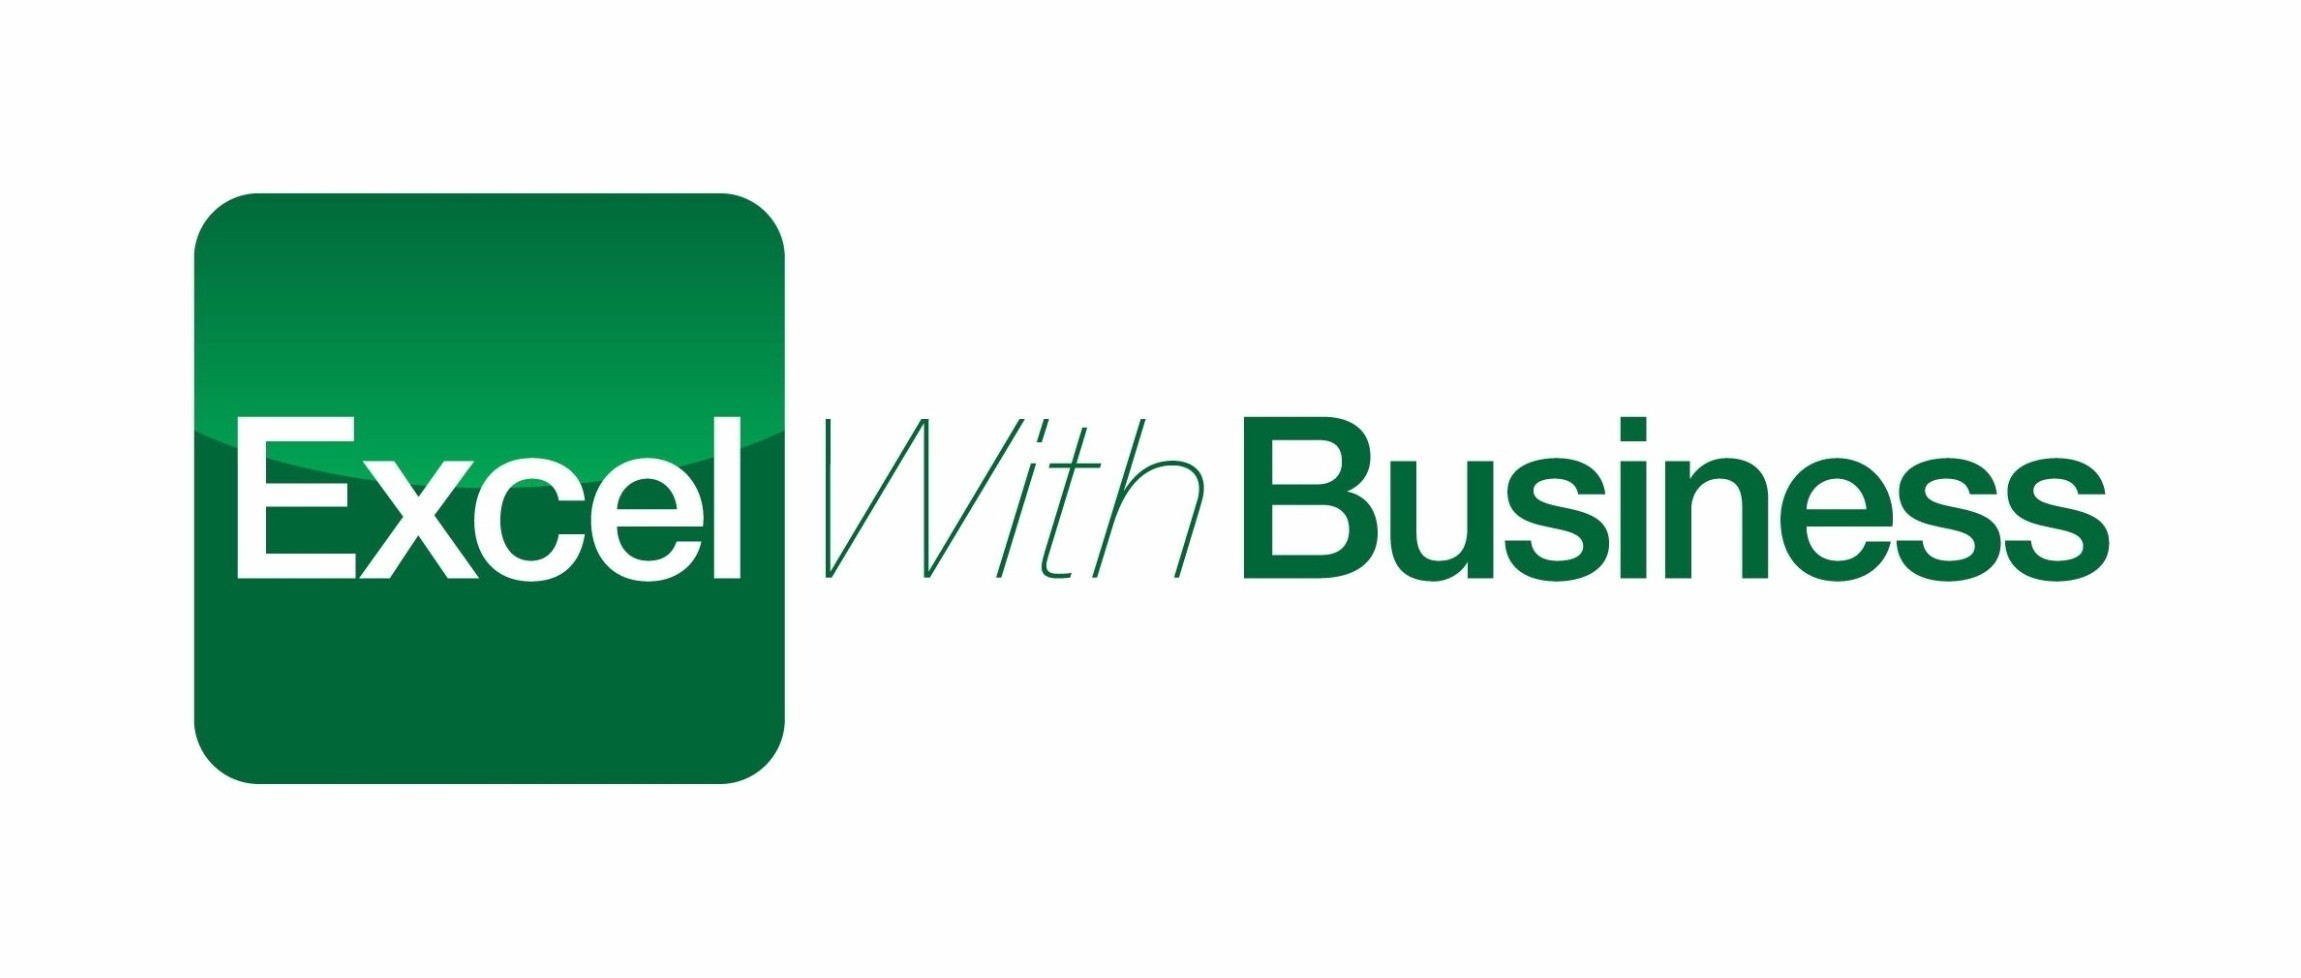 Excel With Business Vouchers